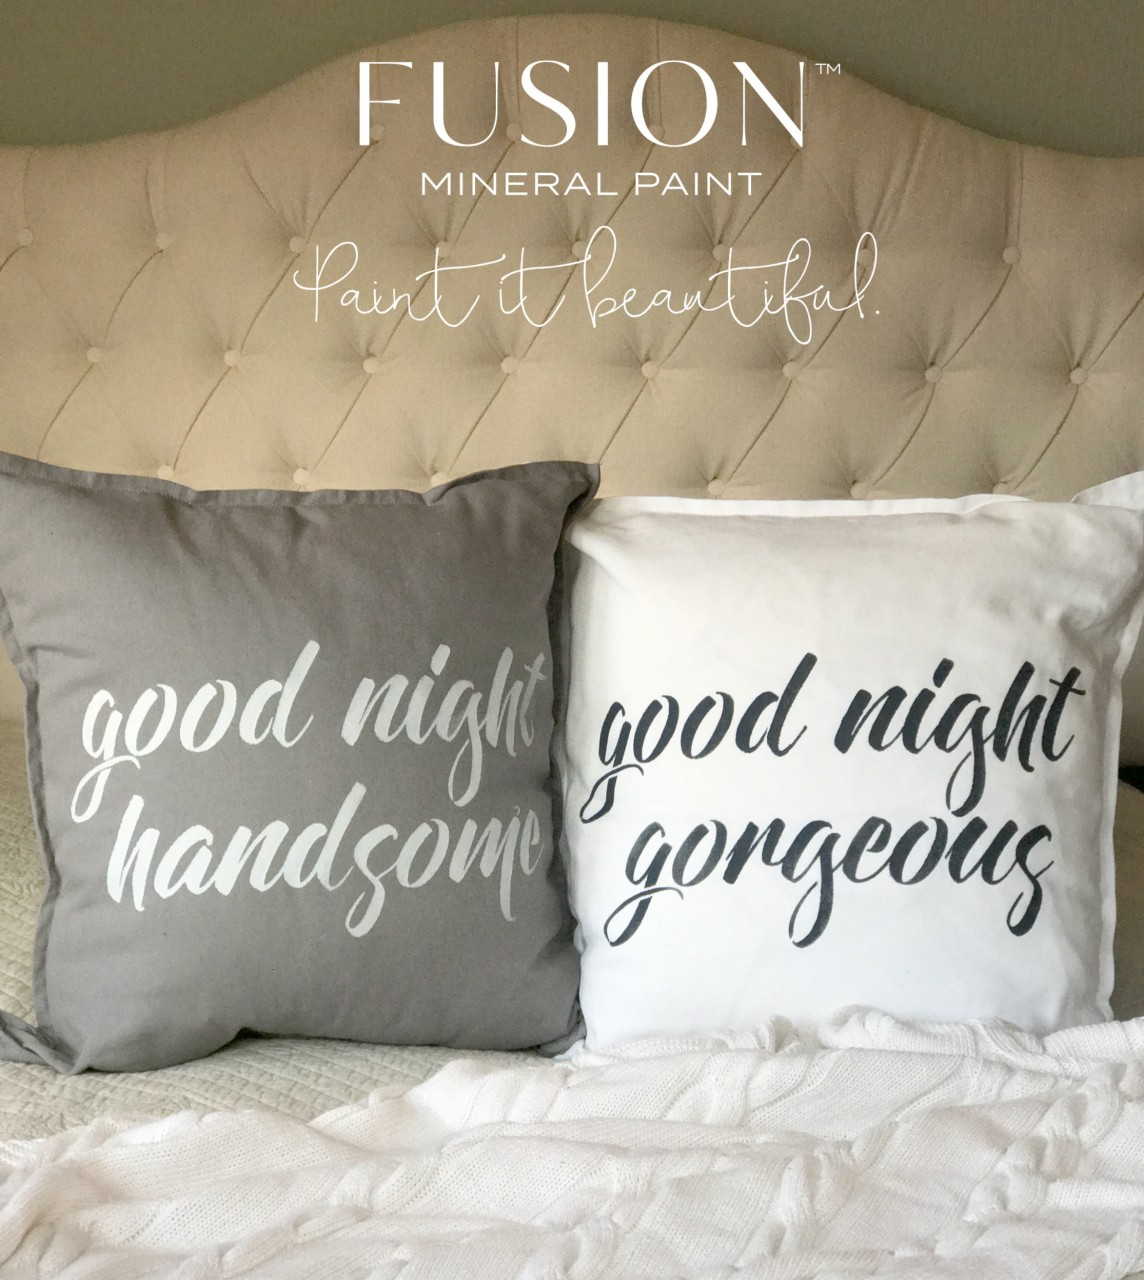 Ikea Hack Pillow Cover Fabric Painting | fusionmineralpaint.com